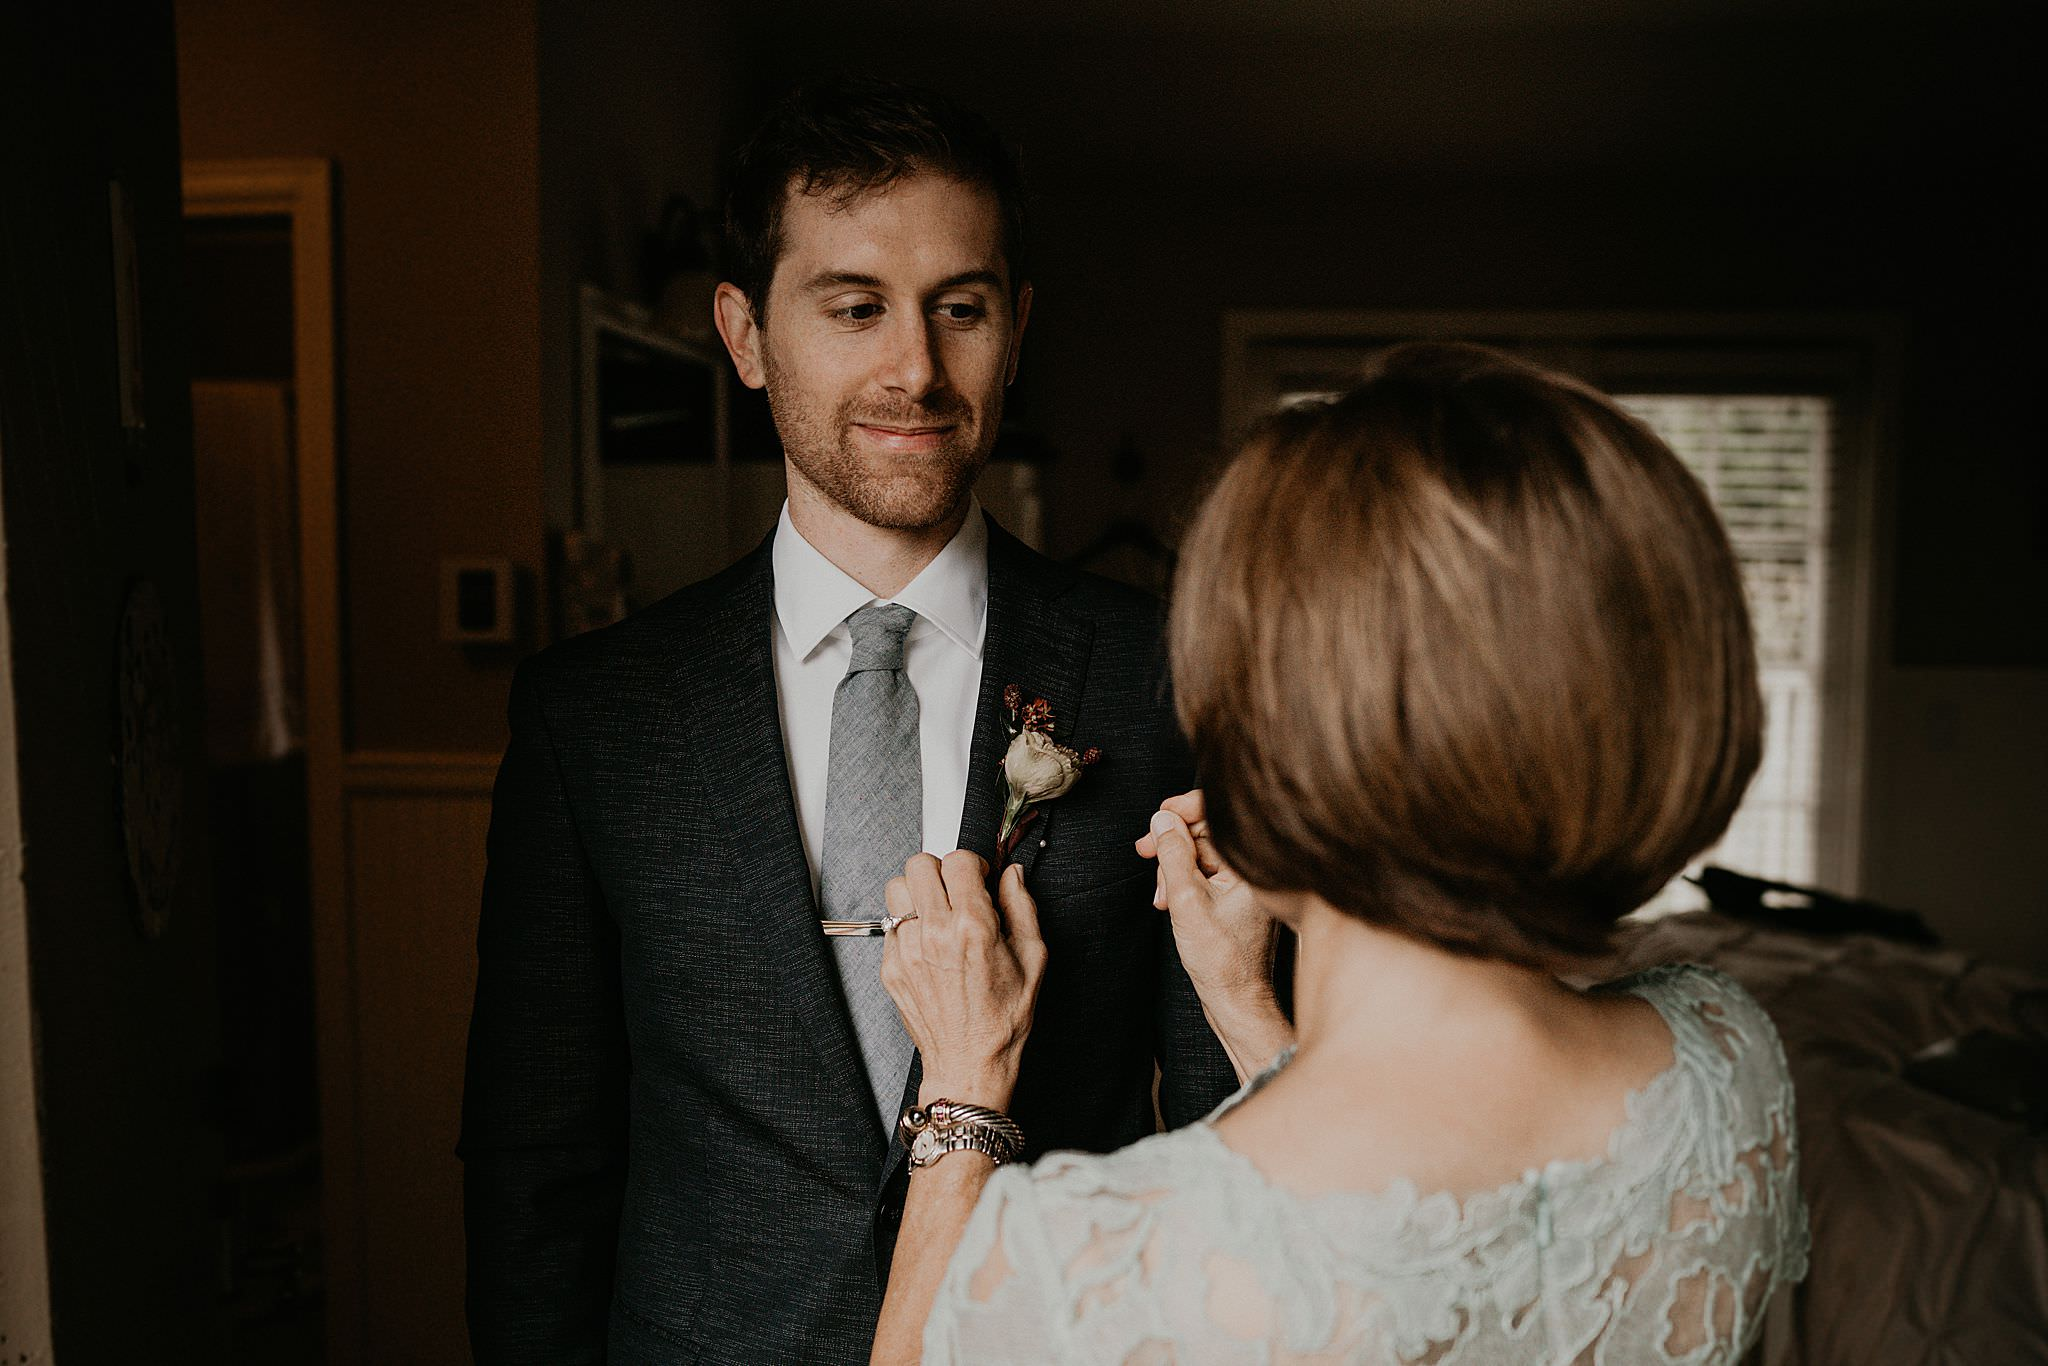 Groom getting read in his gray suit for his intimate wedding at Ebey's landing on Whidbey island